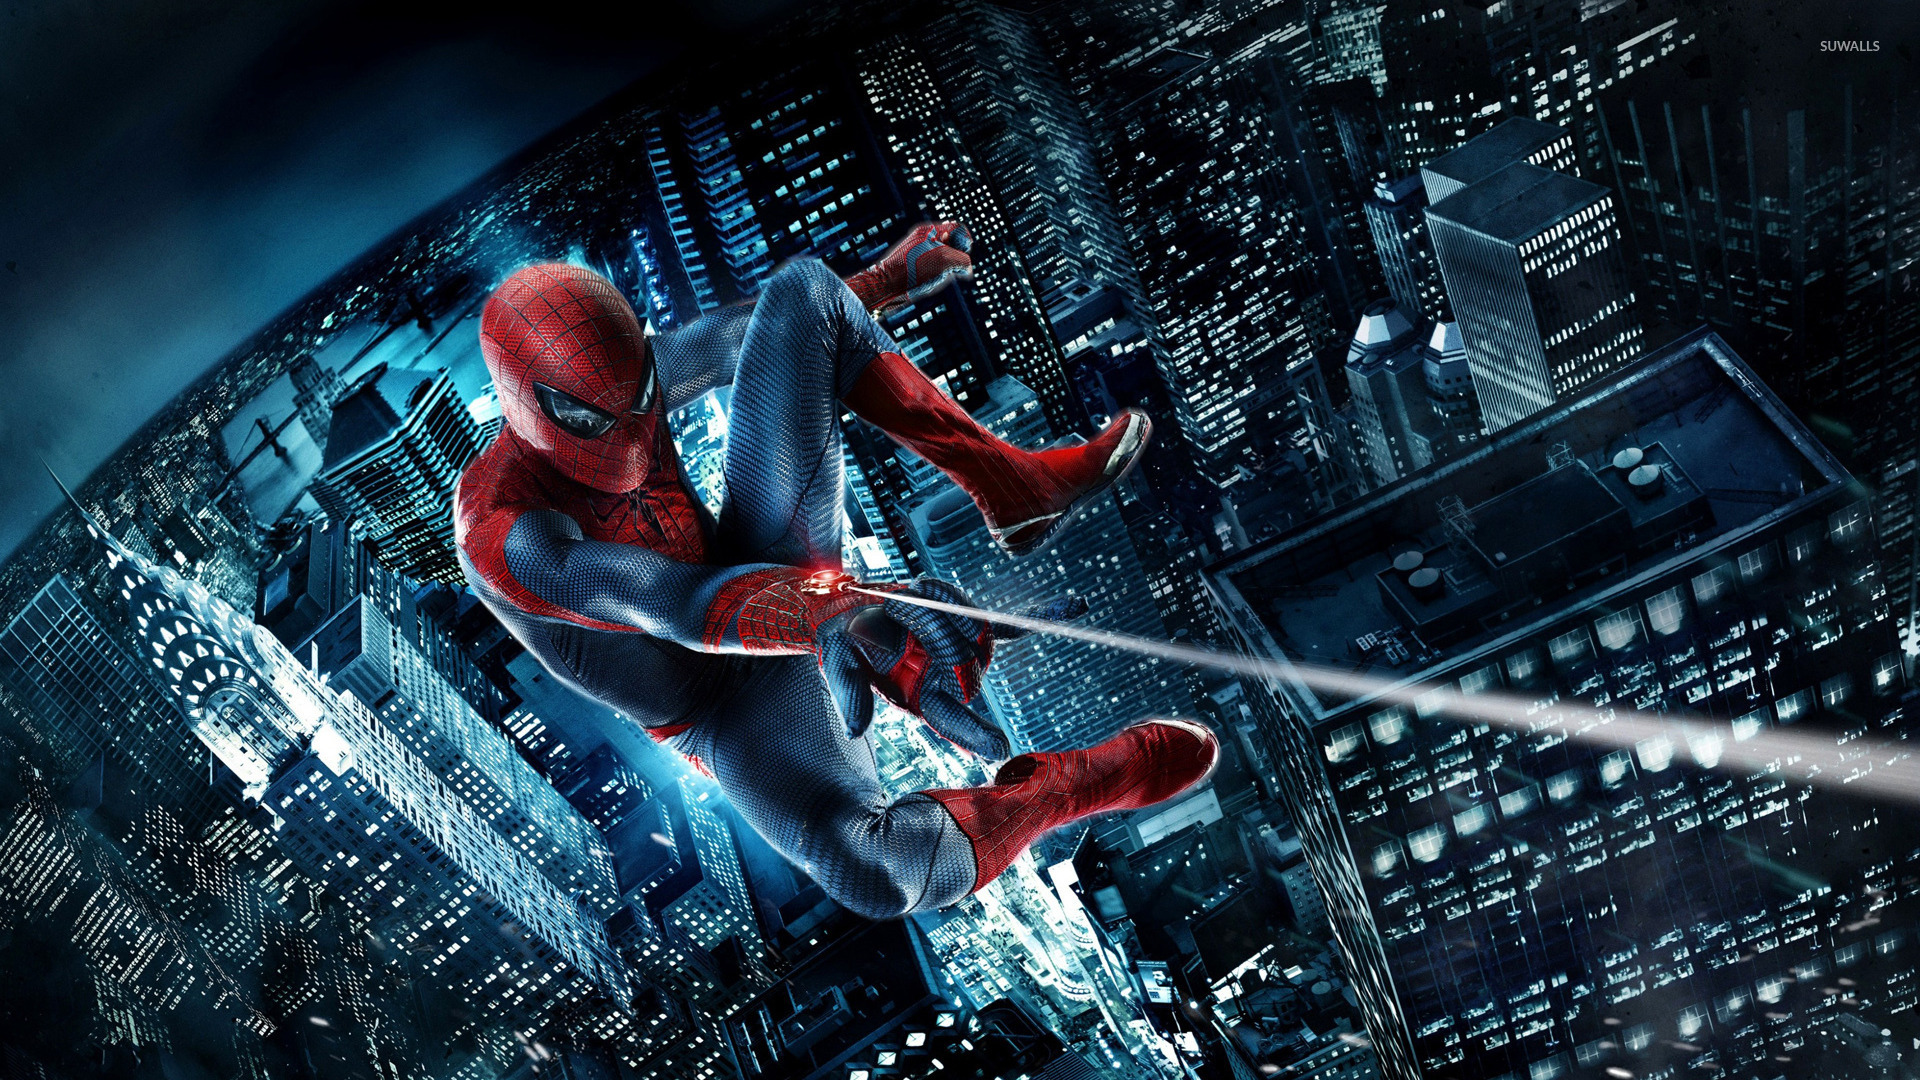 10 Top Spider Man 2099 Wallpaper Full Hd 1080p For Pc Desktop: Spider-Man [3] Wallpaper